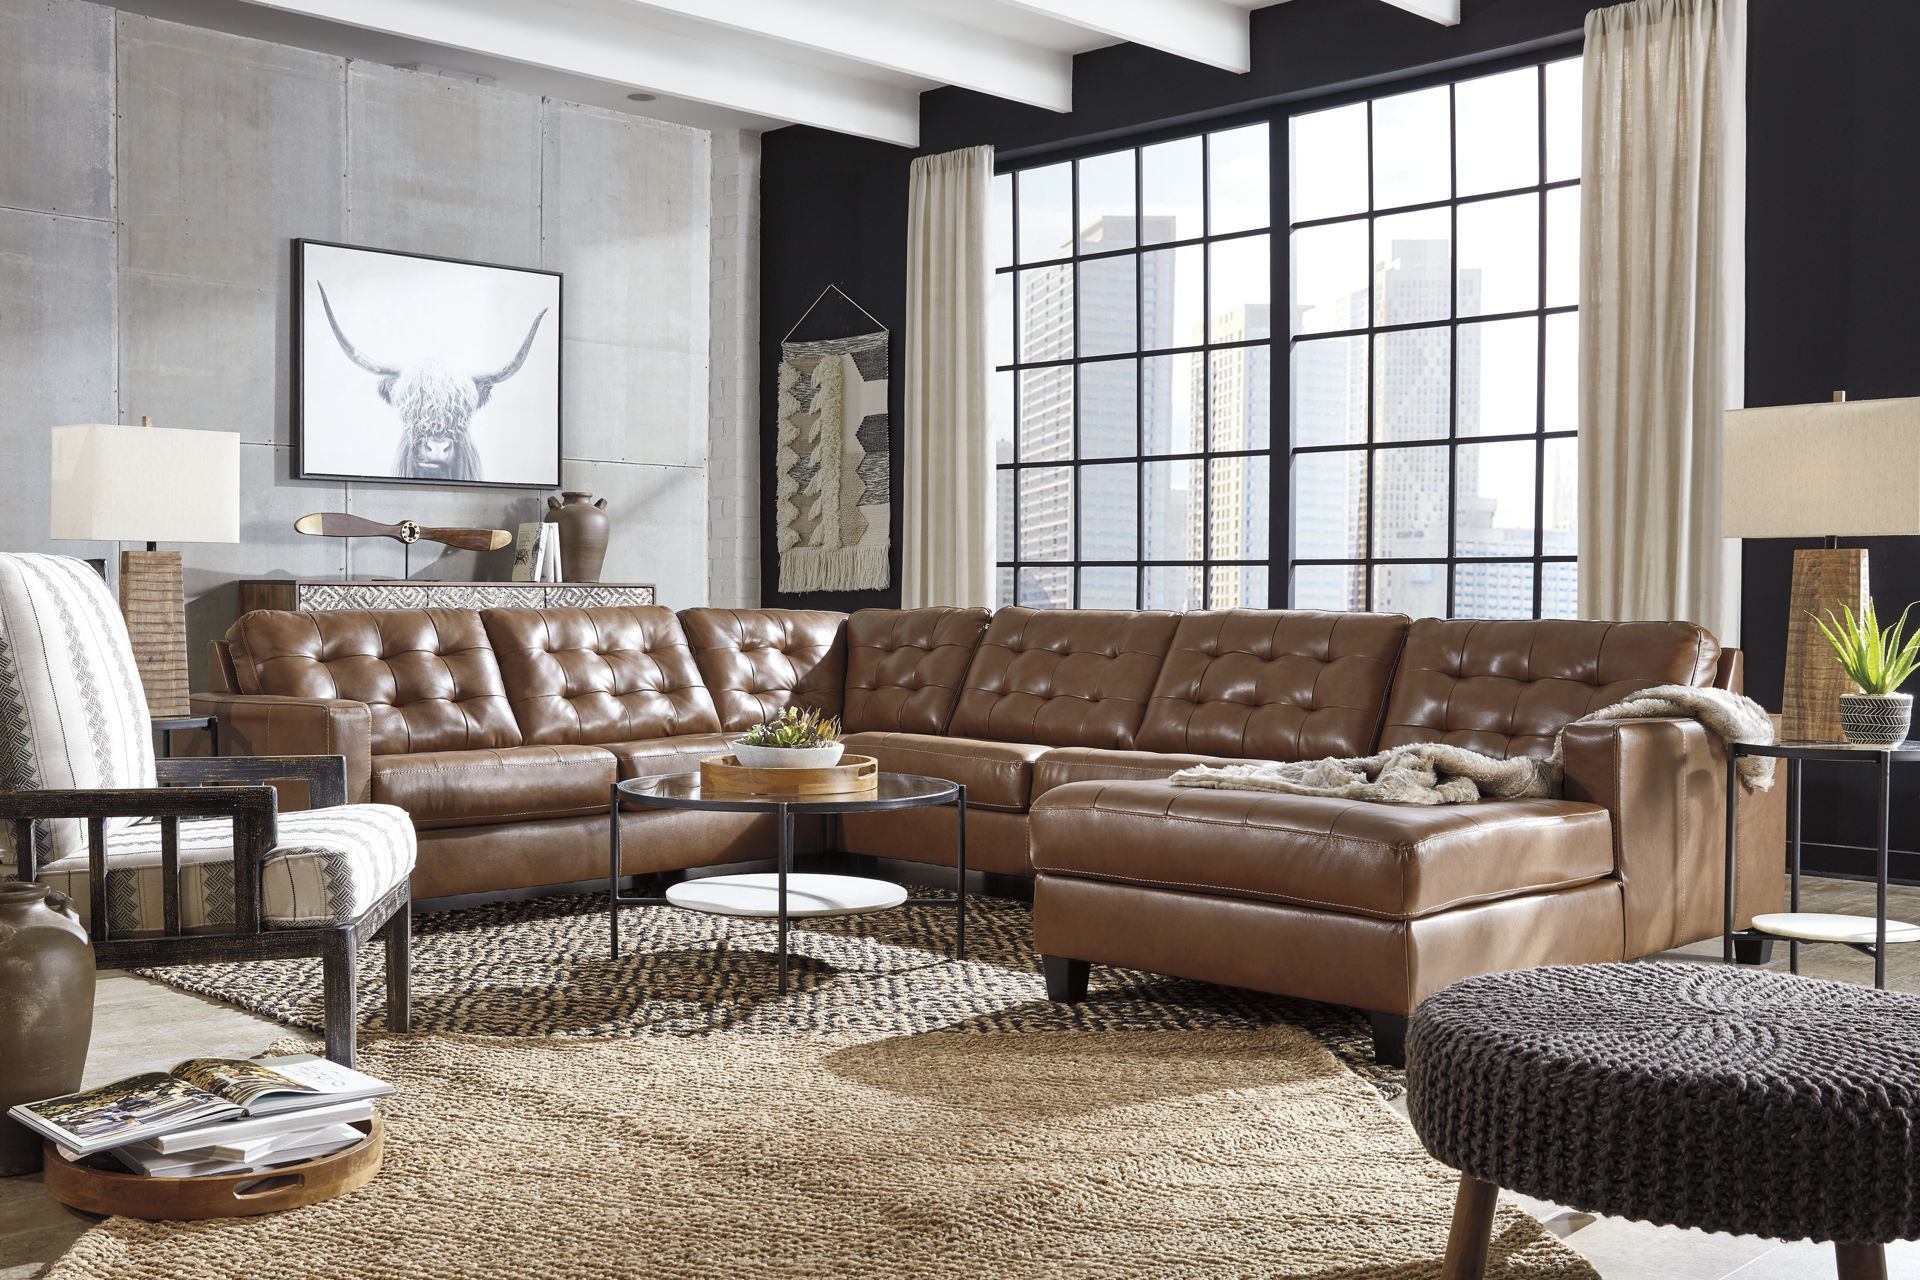 Bruno 4-Piece Leather Sectional - Lifestyle